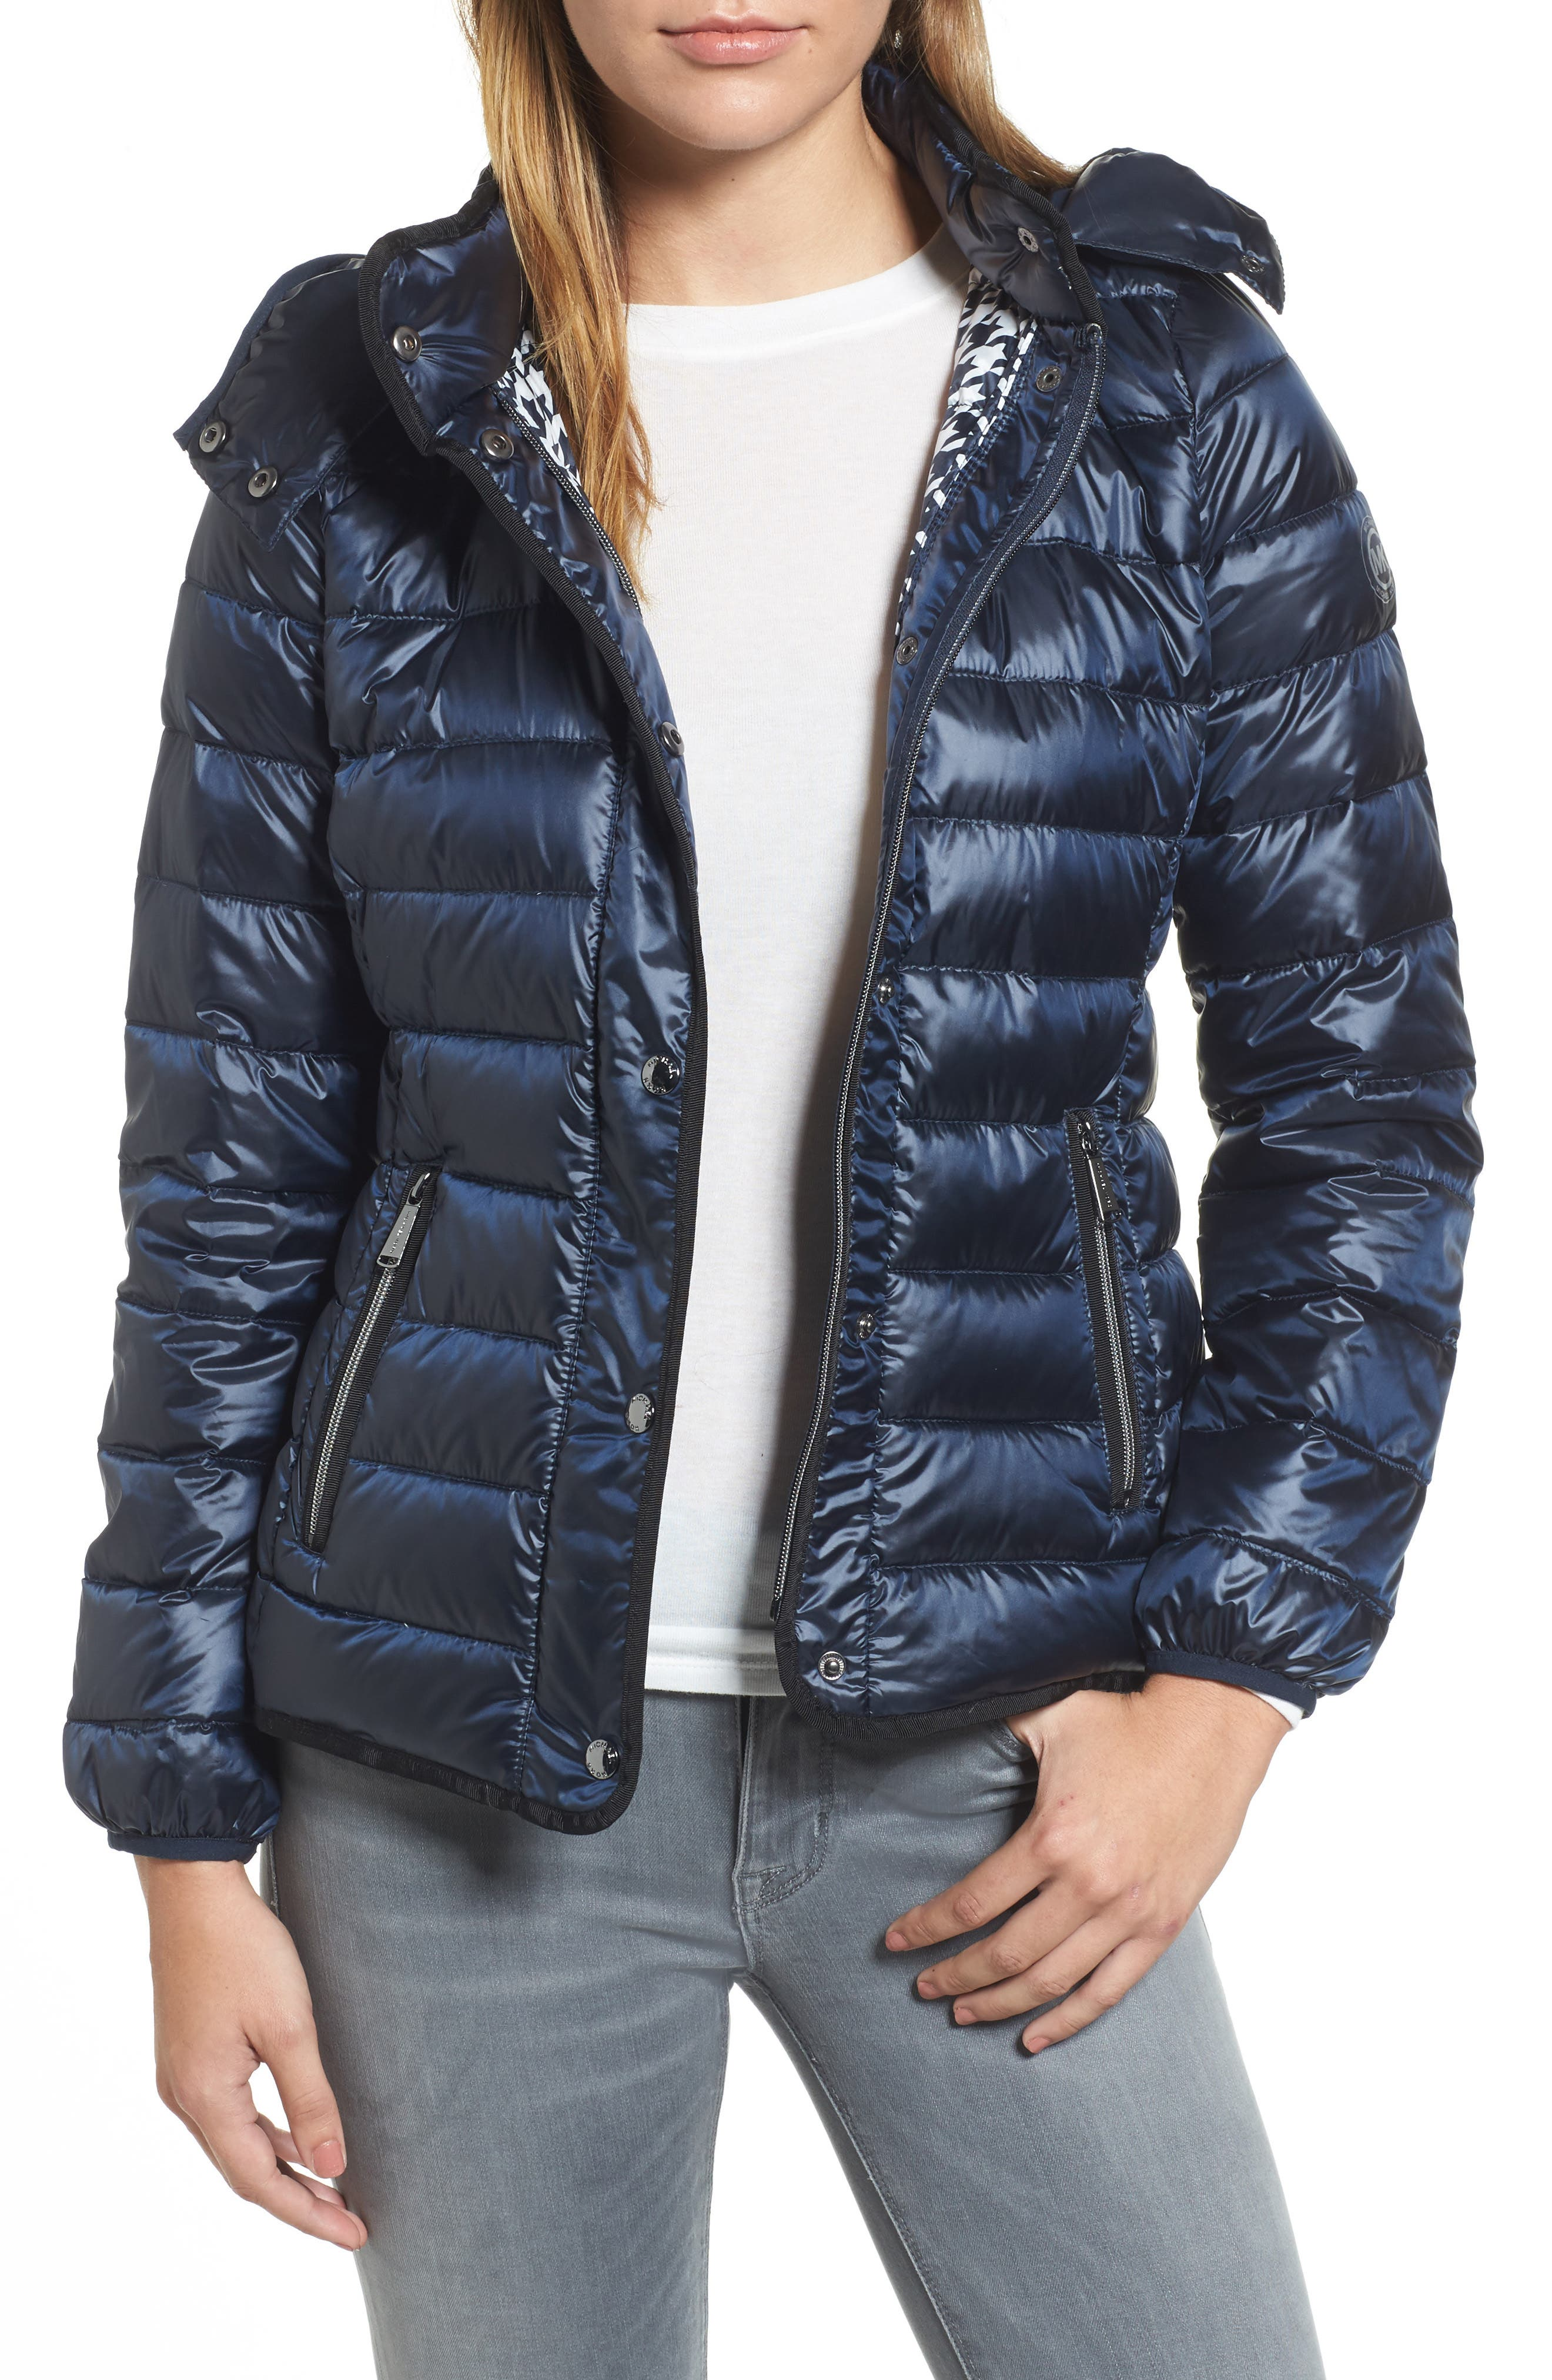 Alternate Image 1 Selected - MICHAEL Michael Kors Packable Insulated Jacket with Removable Hood